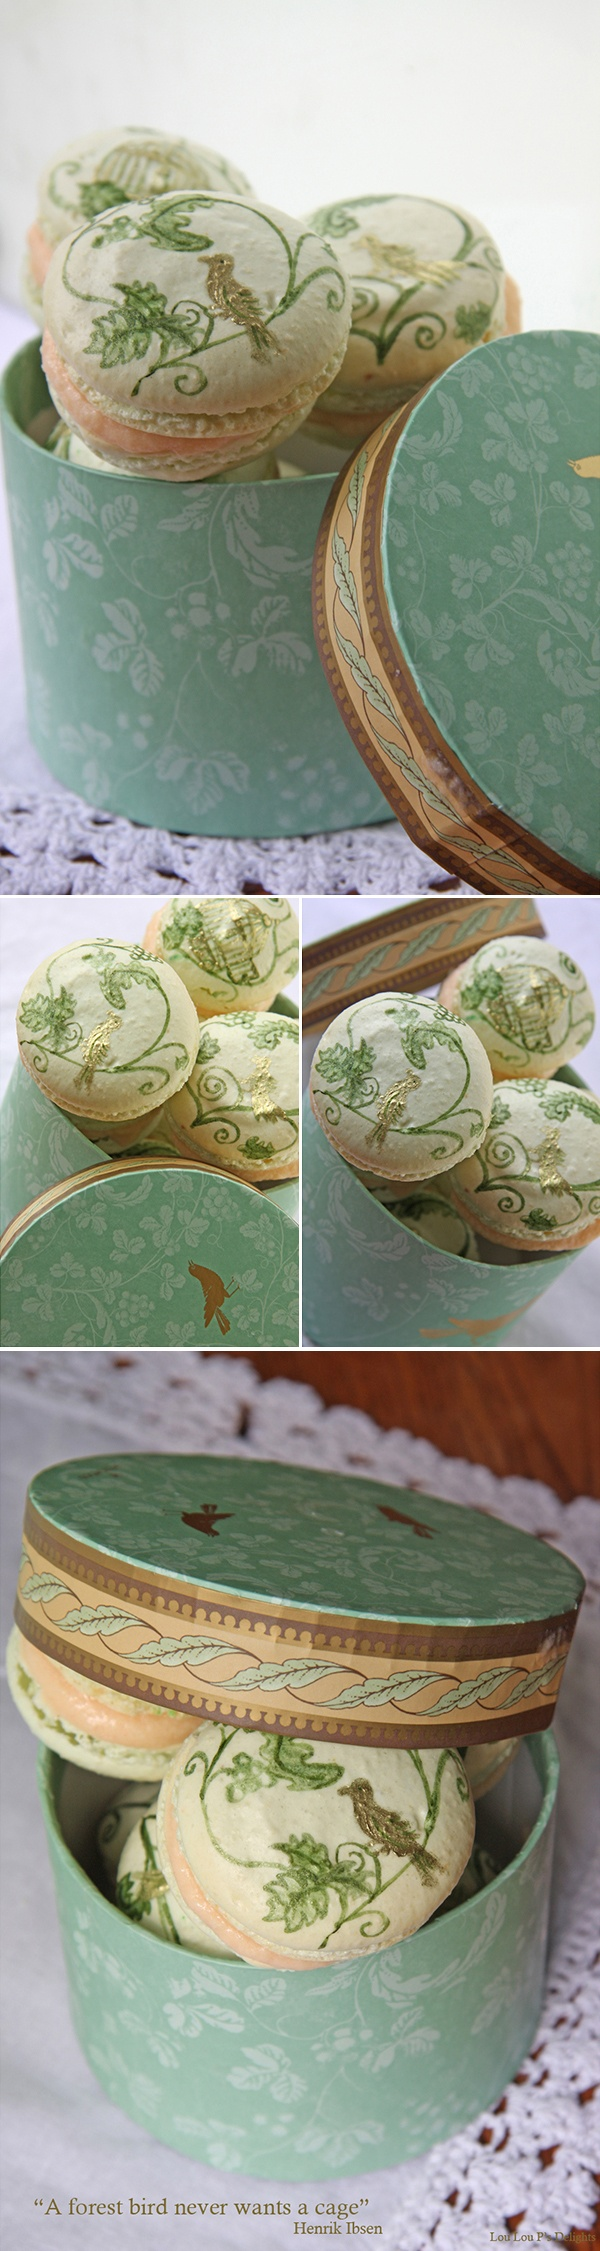 Hand-painted Bird Macarons by Lou Lou P's Delights